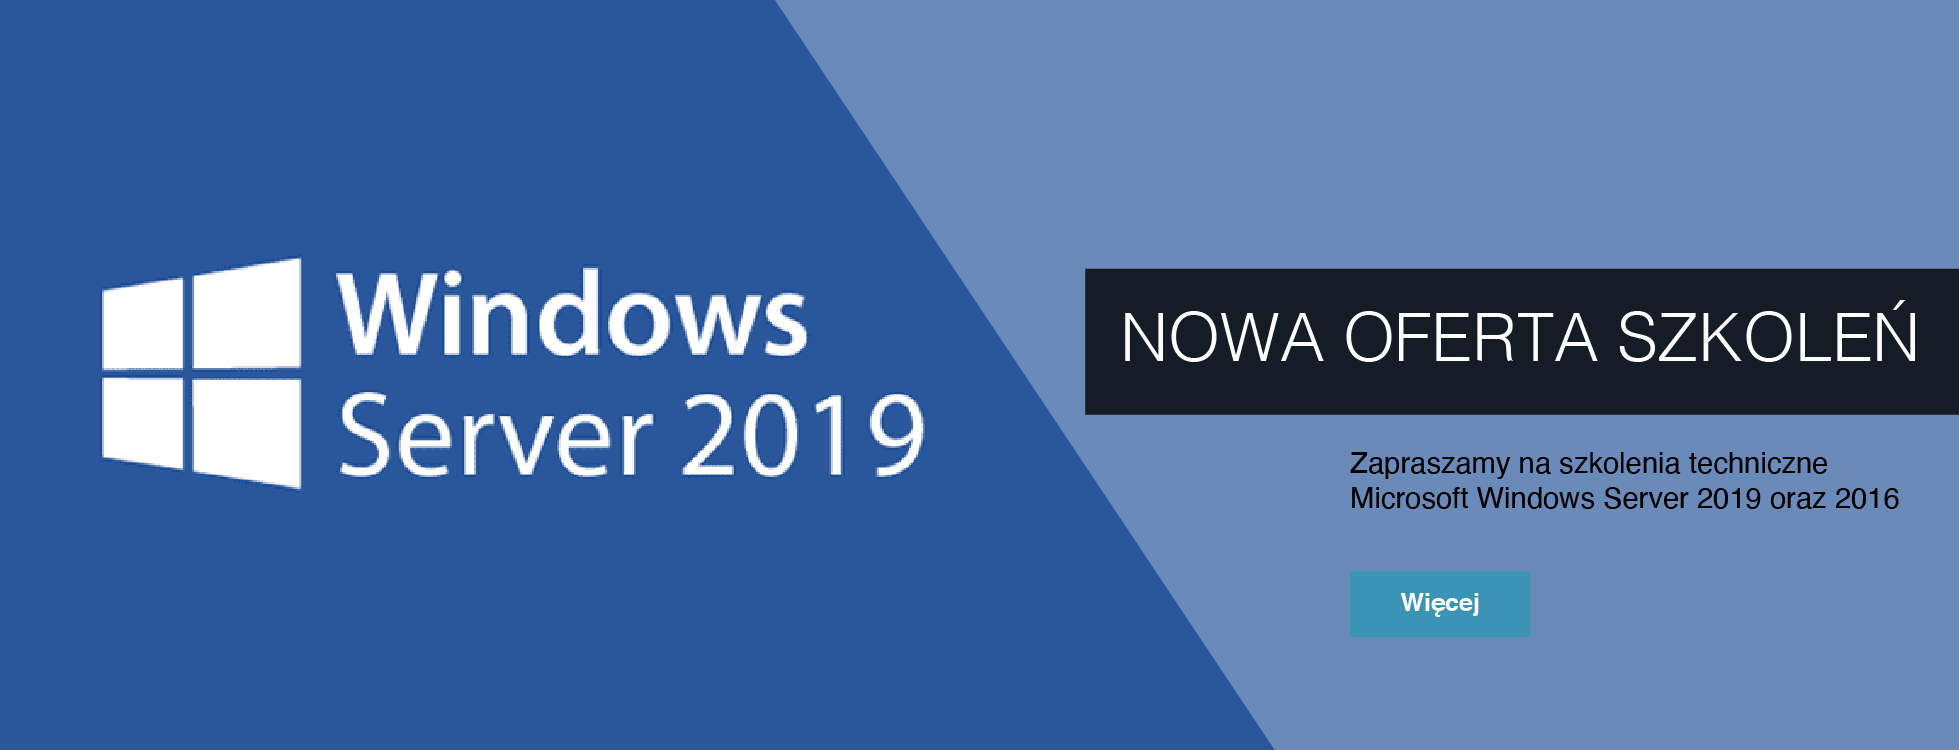 Szkolenia Microsoft Windows Server 2019